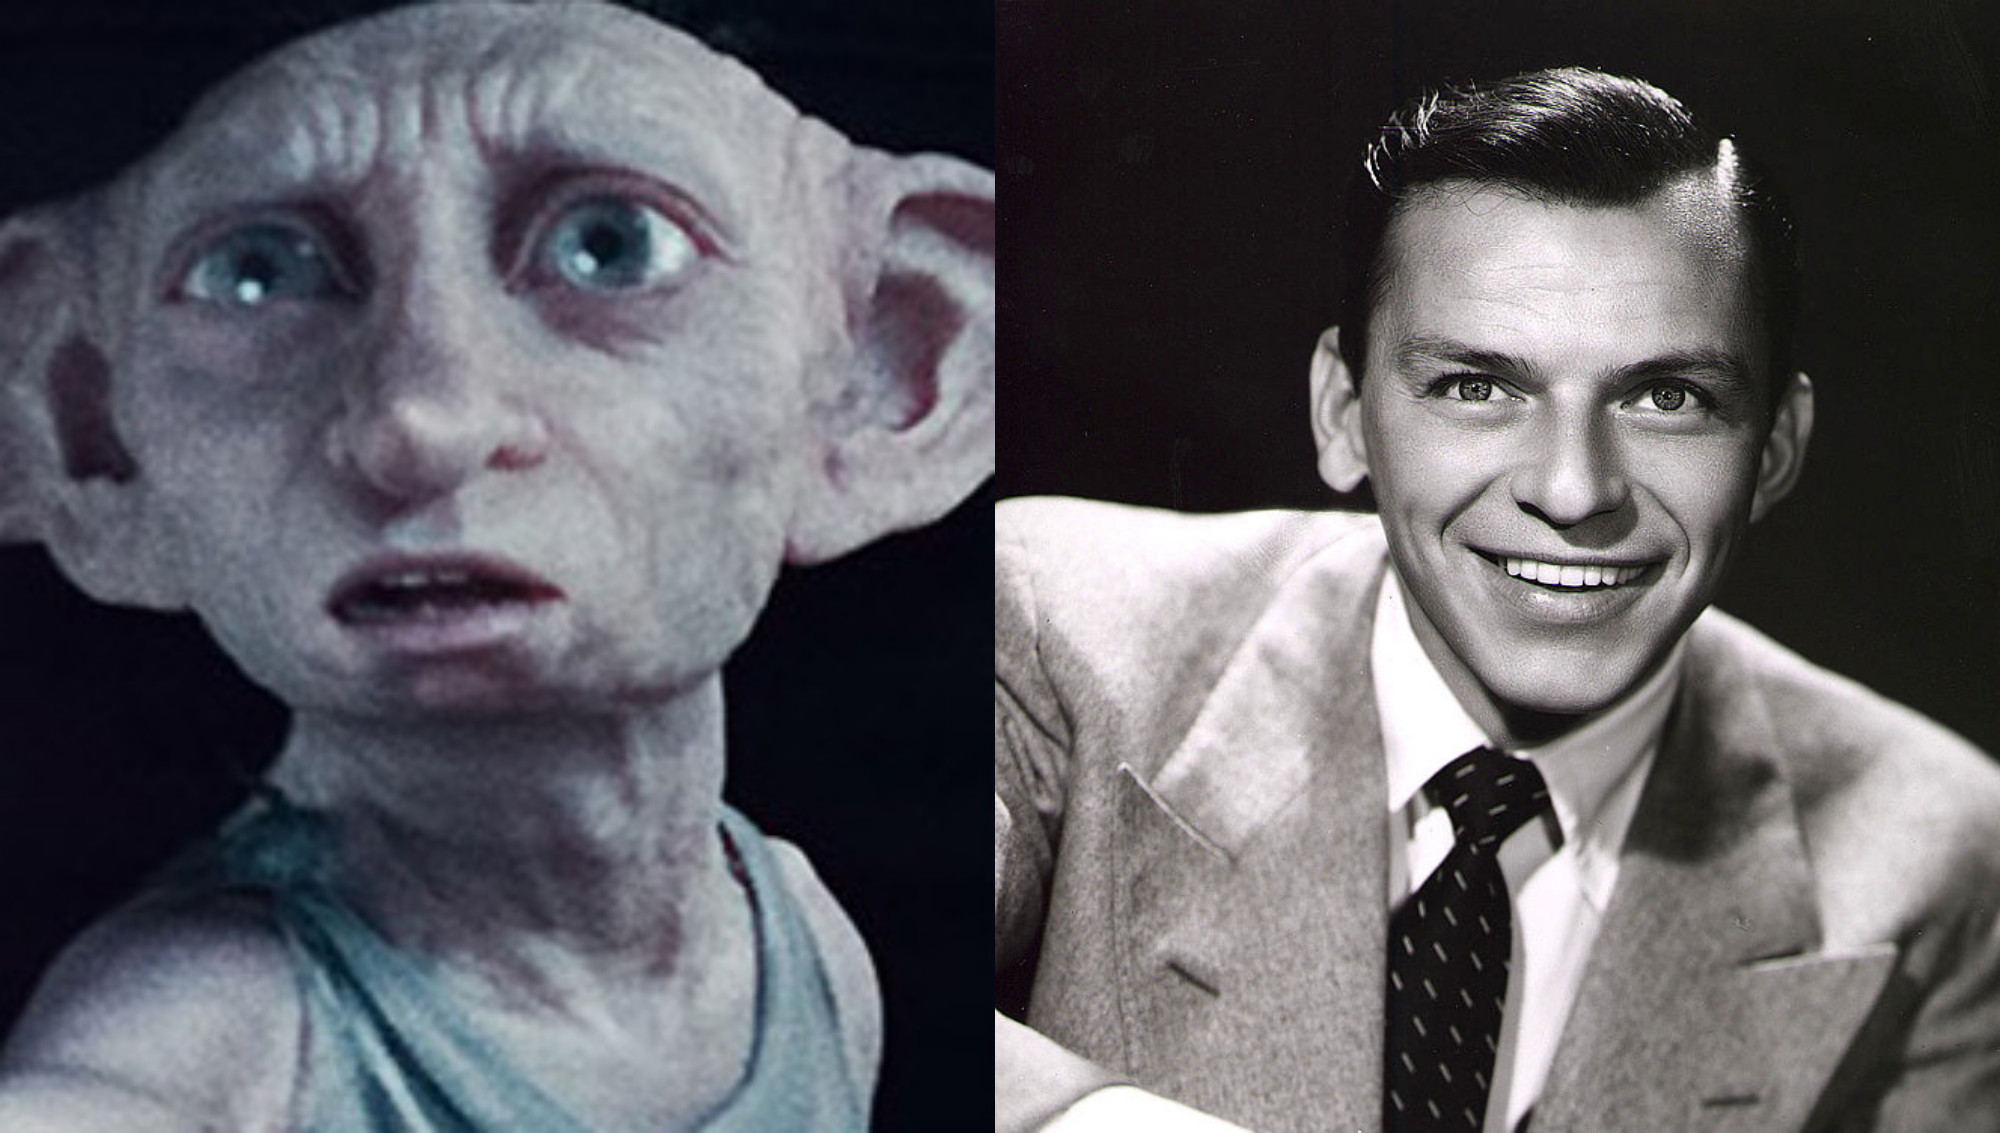 Sorry In Advance, But The Only Two Results On This 'Which Harry Potter Character Are You?' Quiz Are Dobby And Frank Sinatra